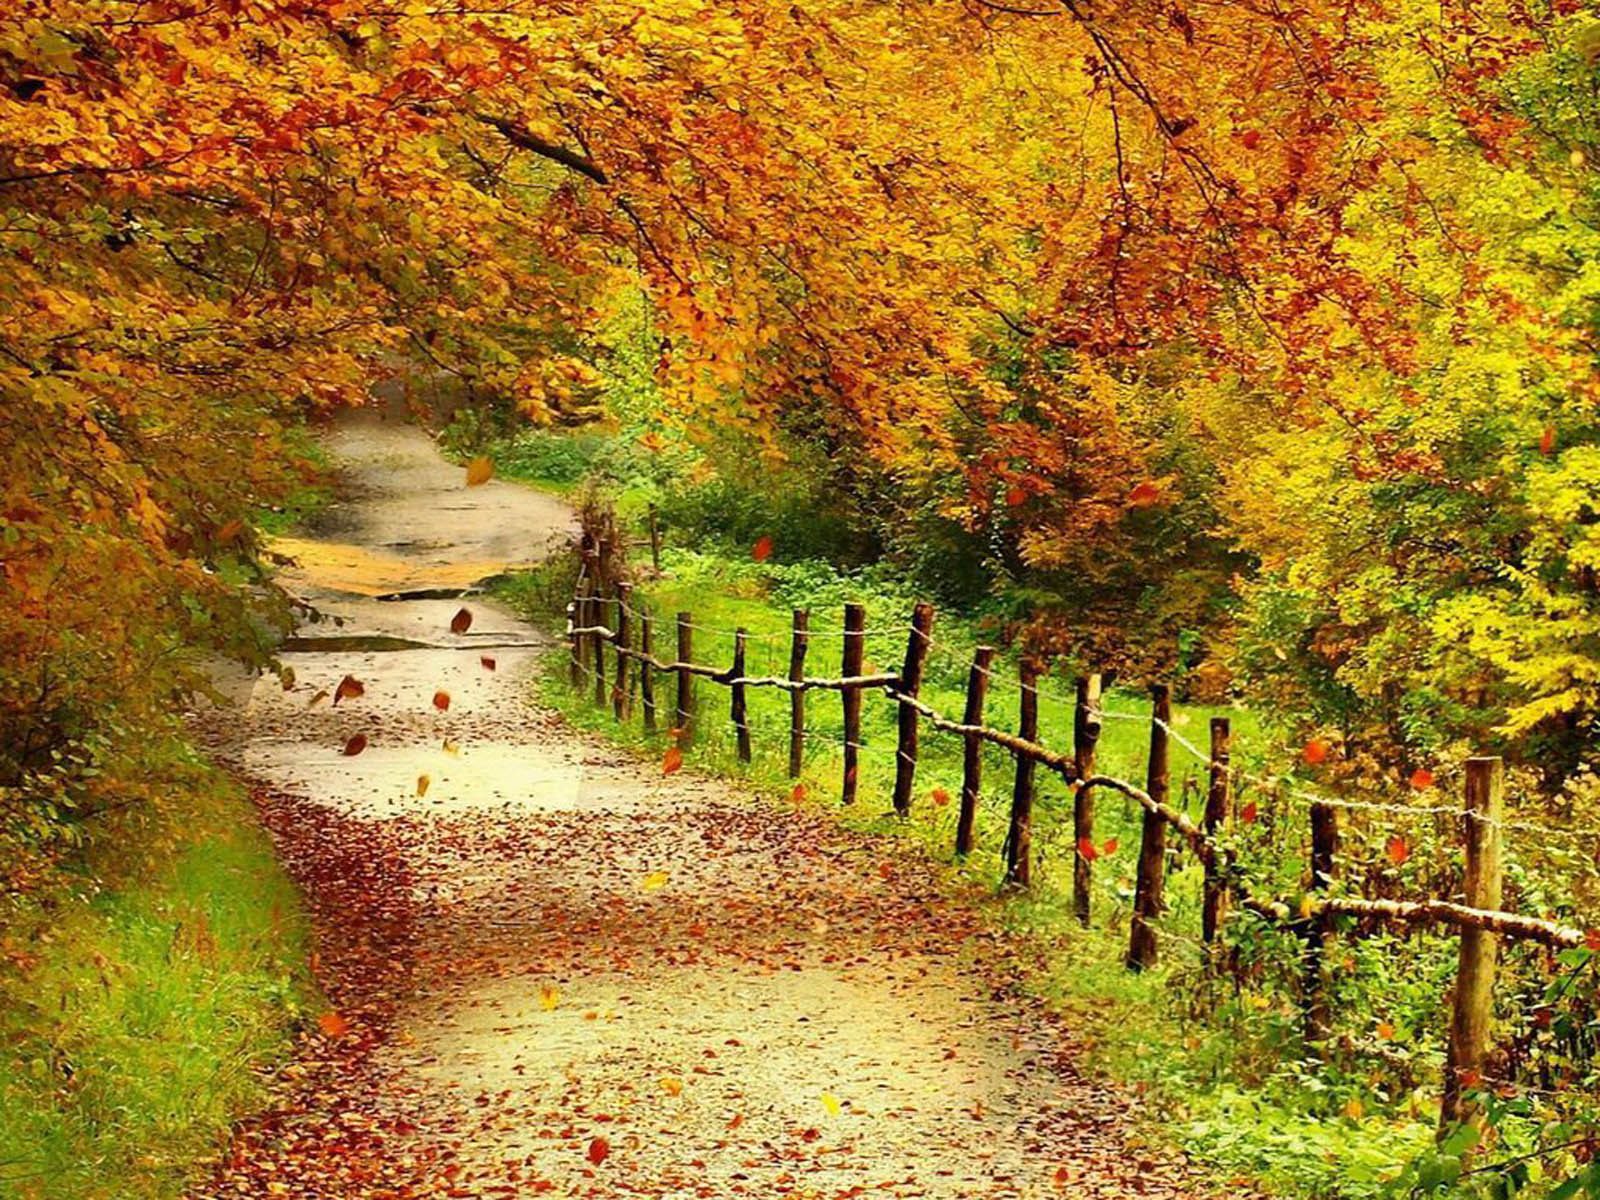 wallpapers Beautiful Autumn Scenery Wallpapers 1600x1200